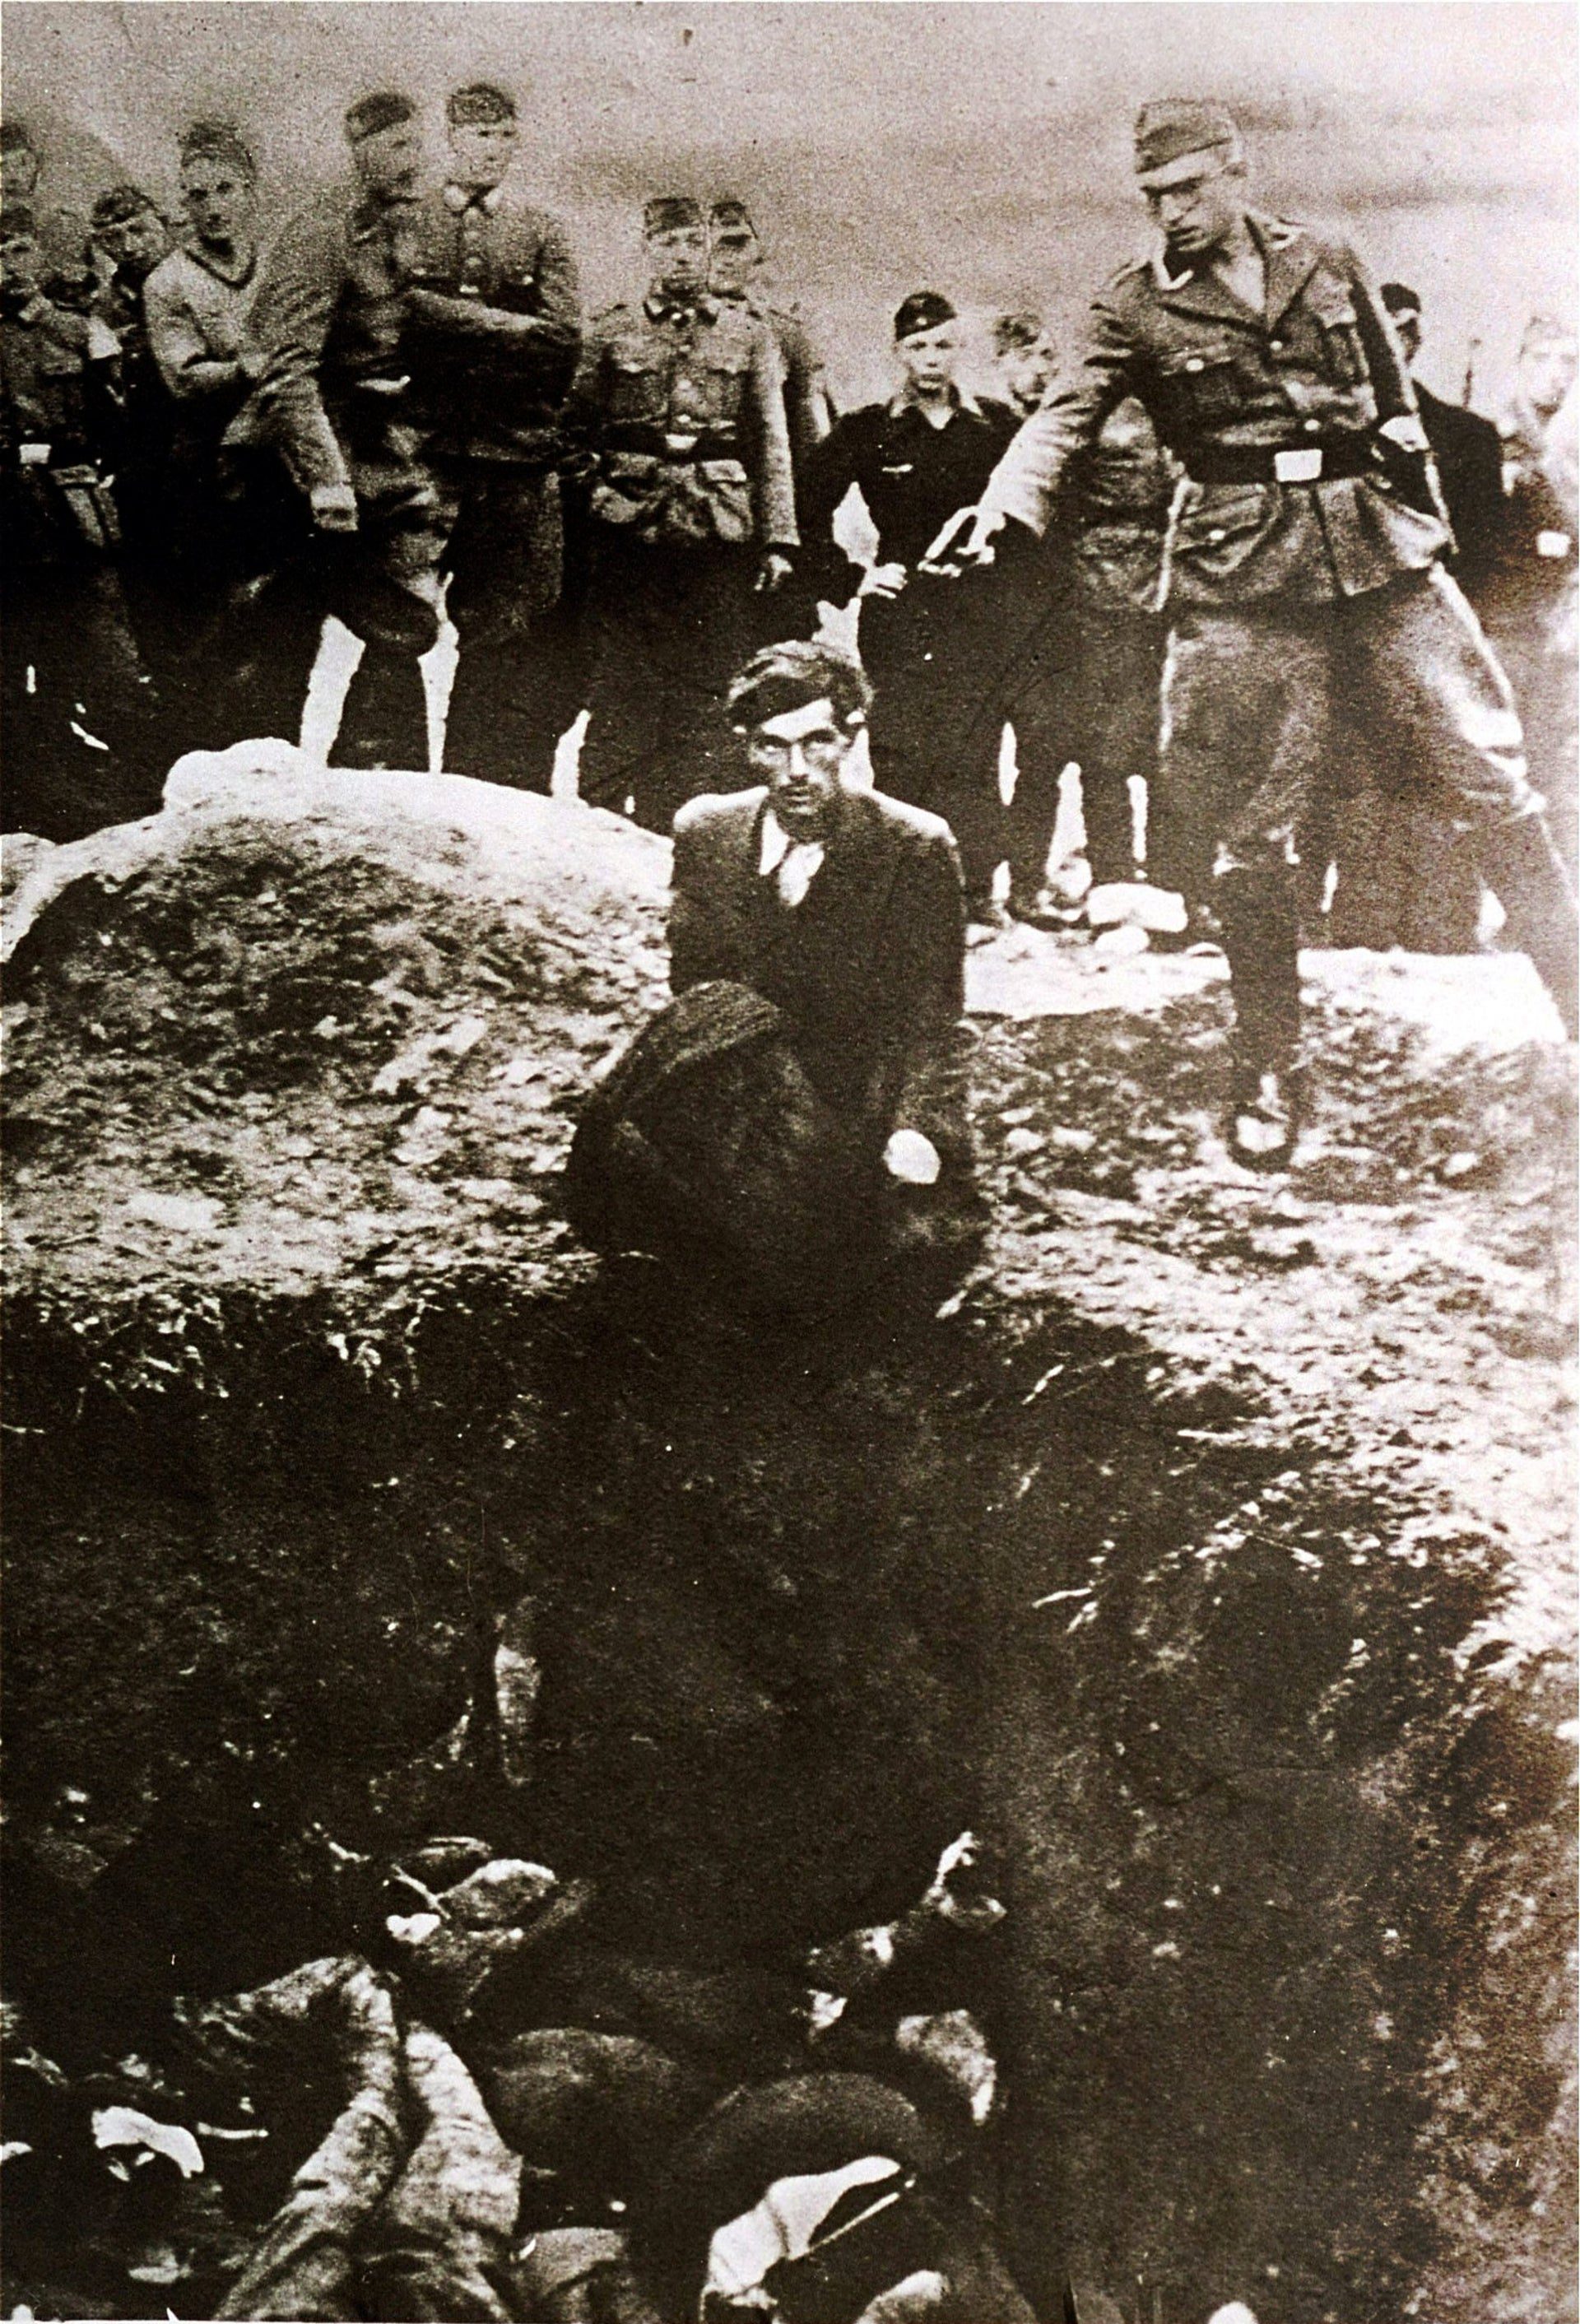 a German soldier shooting an Ukrainian Jew during a mass execution in Vinnitsa, Ukraine, between 1941 and 1943.